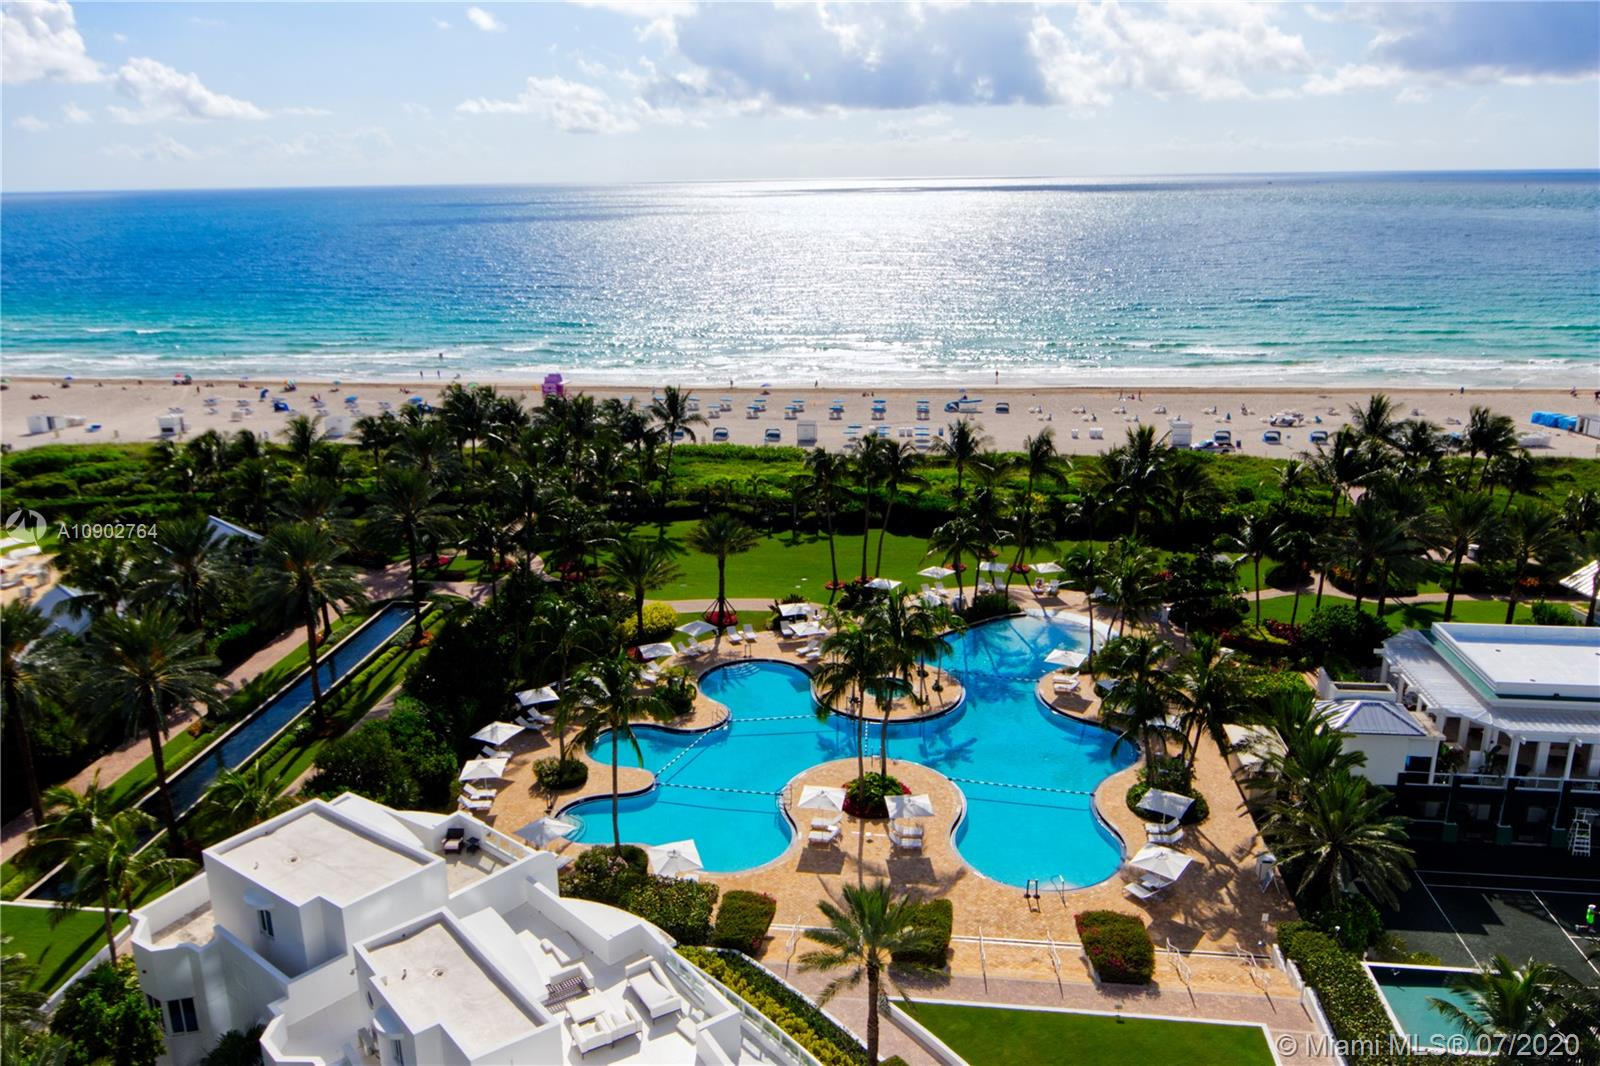 100 S Pointe Dr #1208 For Sale A10902764, FL